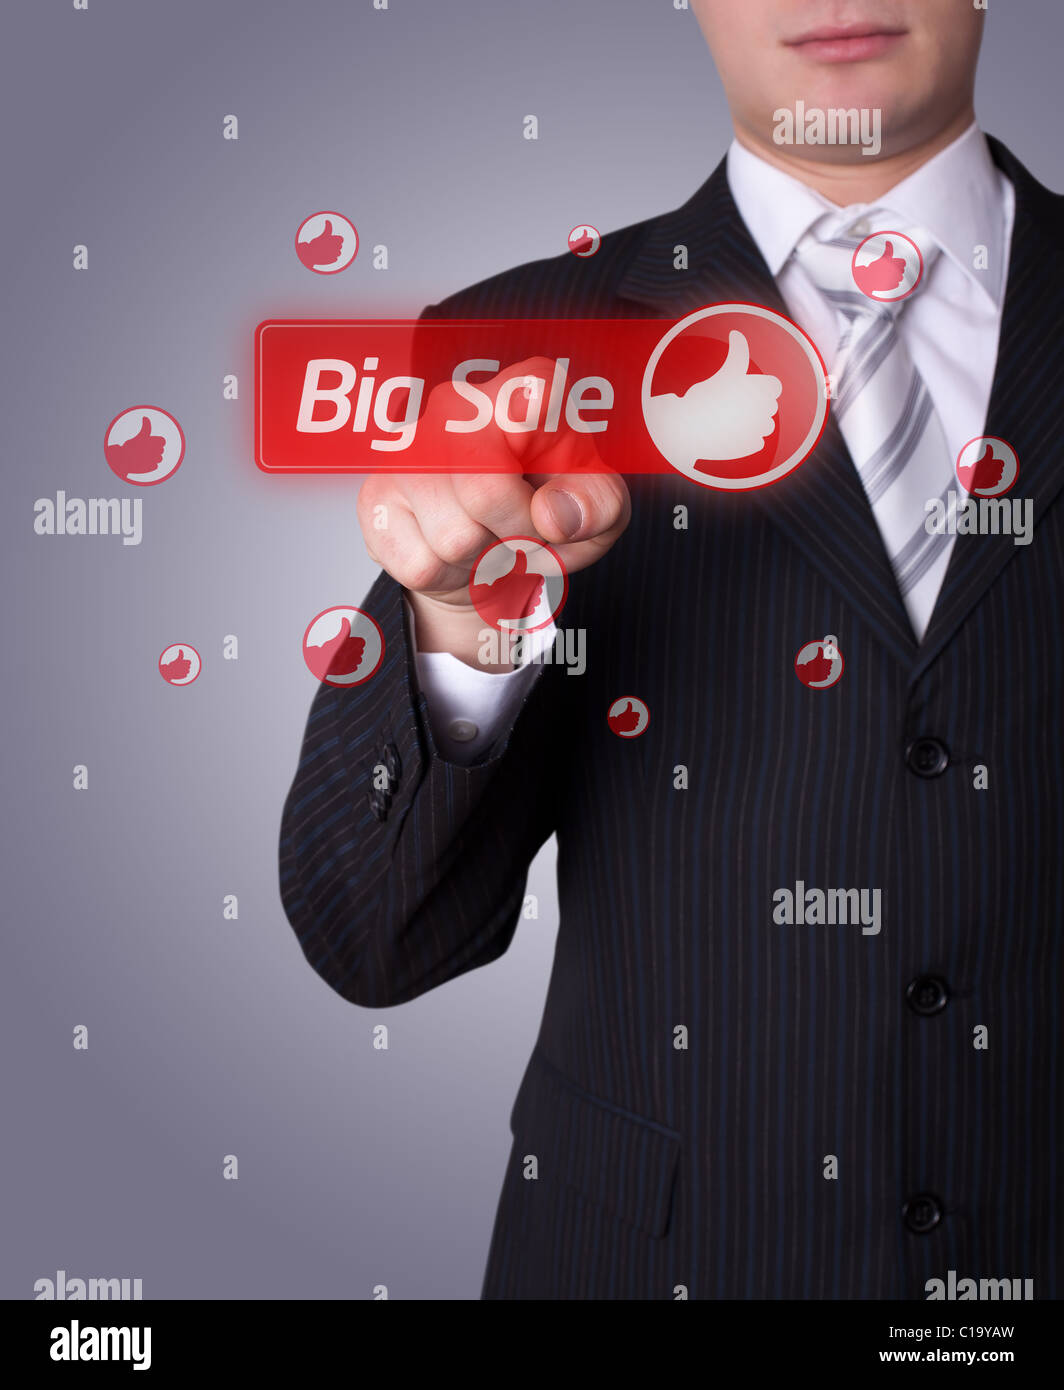 Man hand pressing BIG SALE button - Stock Image